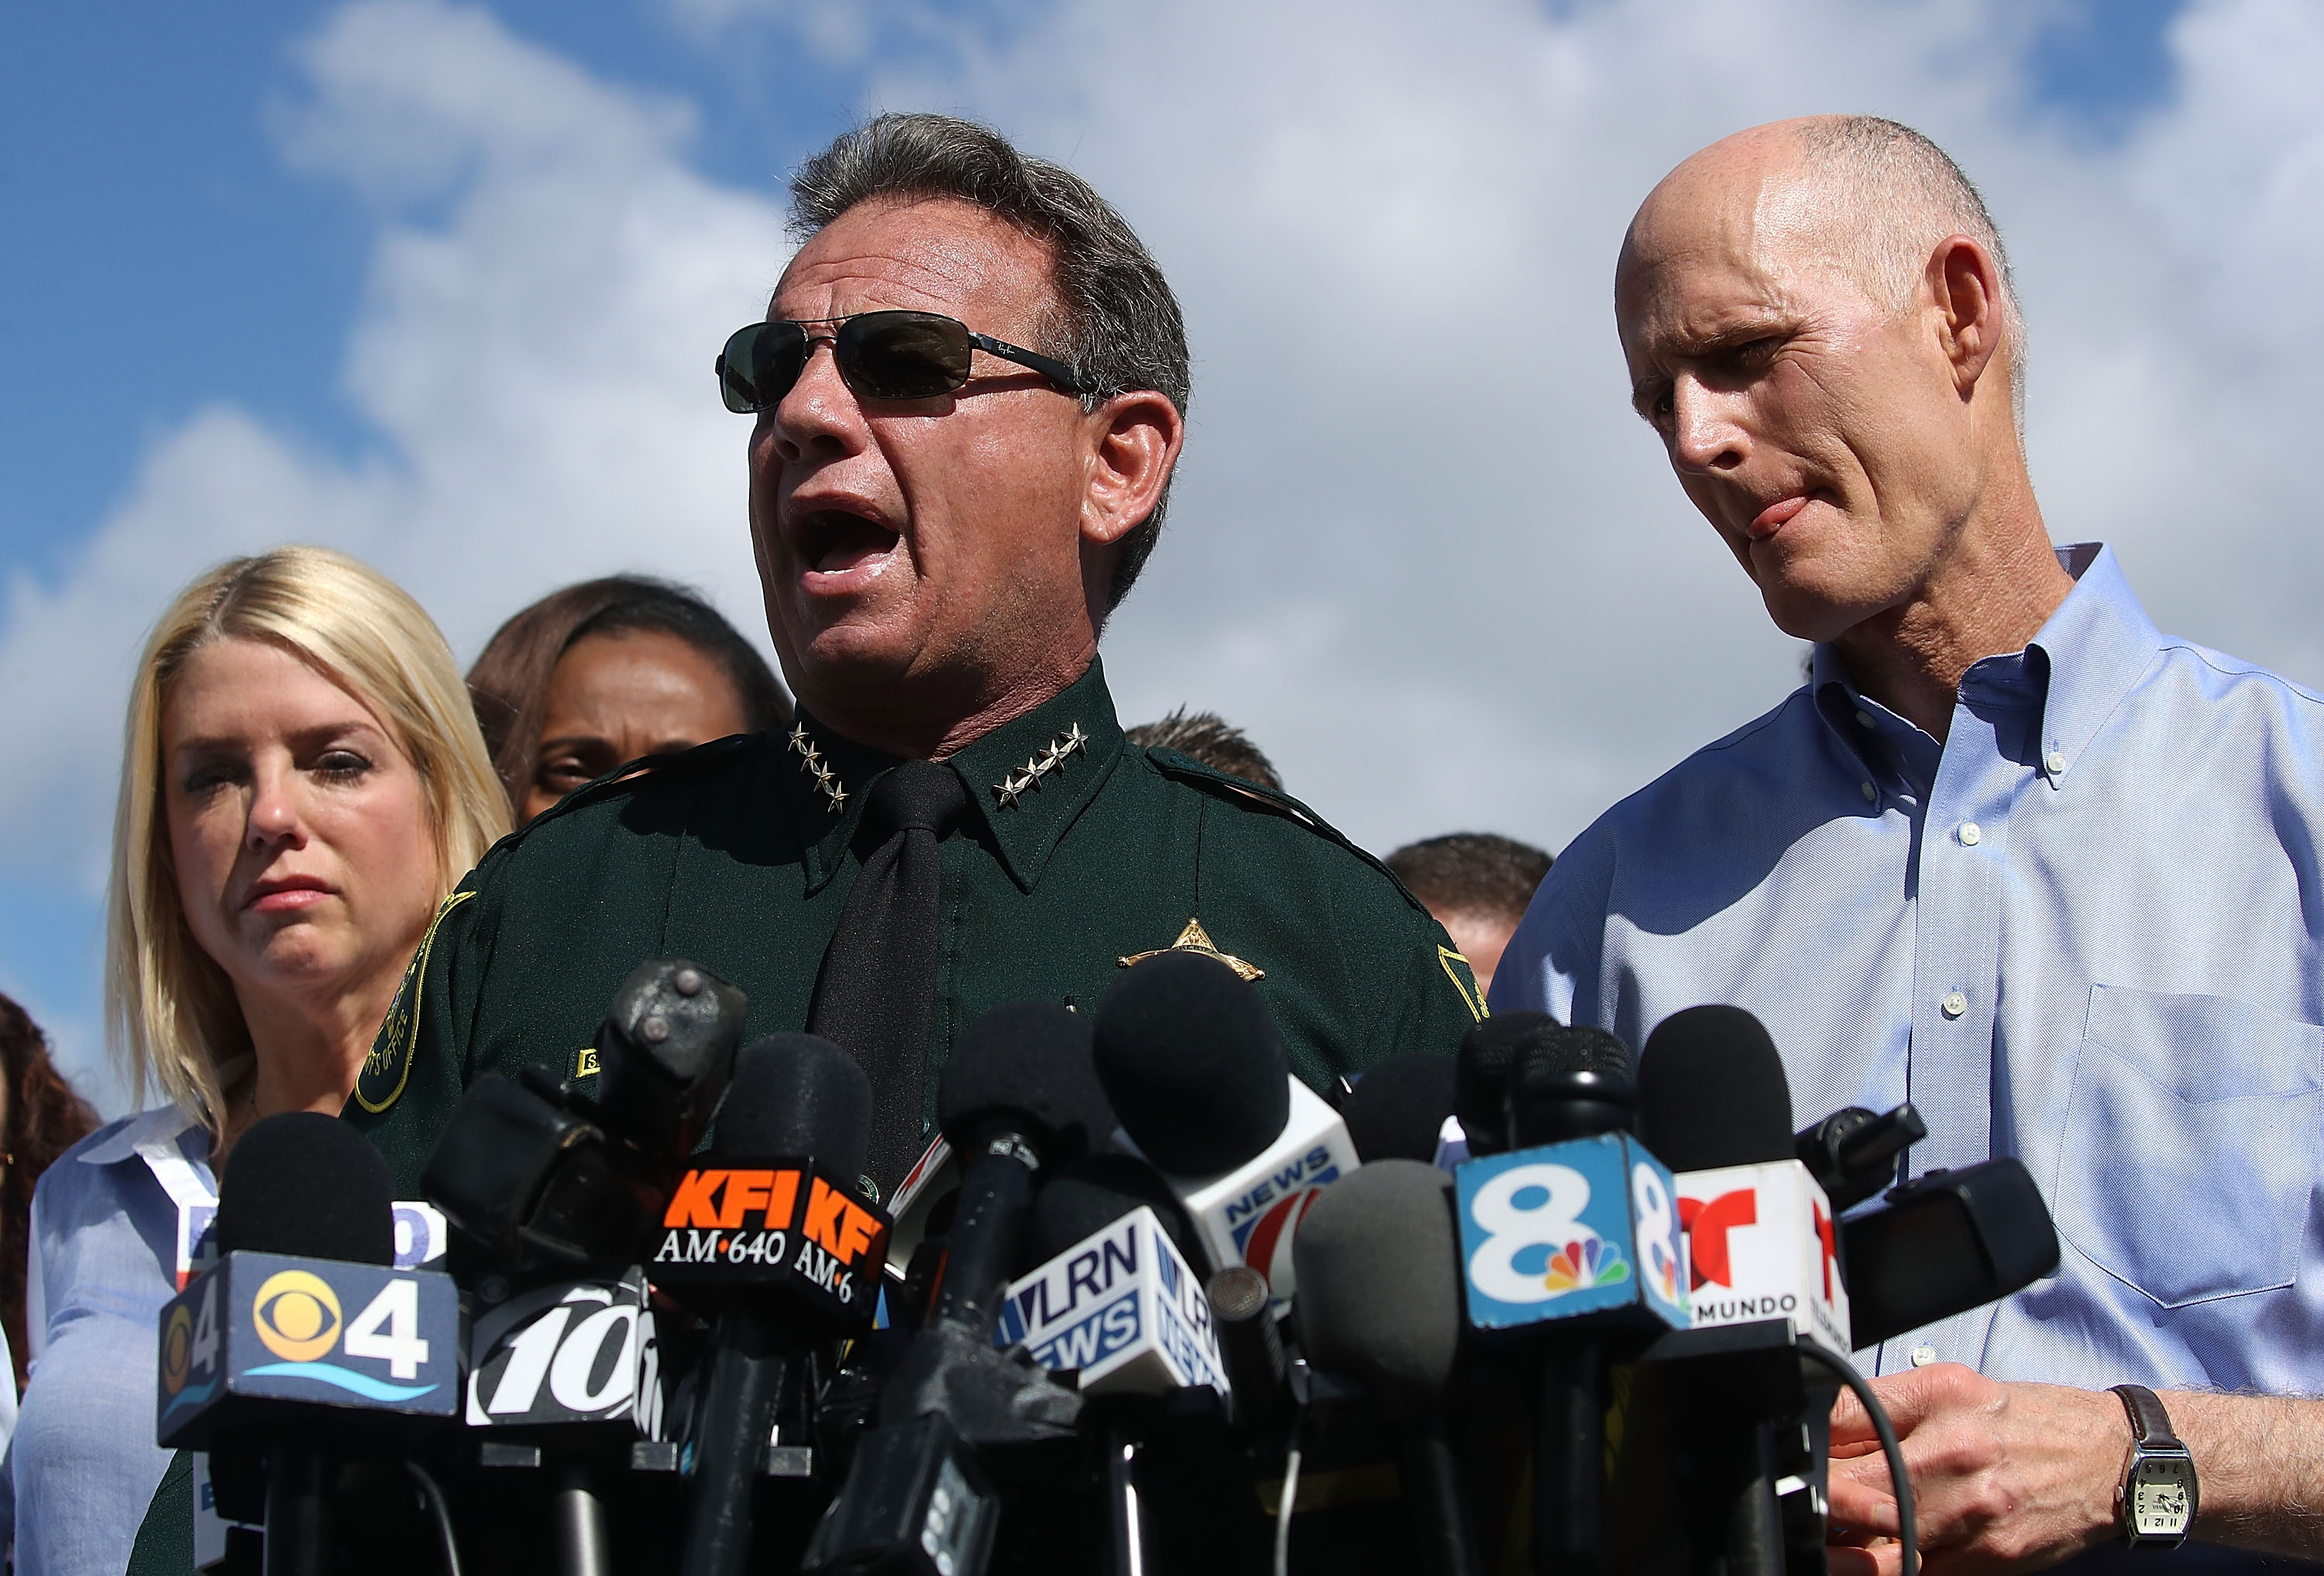 PARKLAND, FL - FEBRUARY 15: Broward County Sheriff, Scott Israel (C), Florida Governor Rick Scott,(R),and Florida Attorney General Pam Bondi,(L), speak to the media about the mass shooting at Marjory Stoneman Douglas High School where 17 people were killed yesterday, on February 15, 2018 in Parkland, Florida. Police arrested the suspect after a short manhunt, and have identified him as 19 year old former student Nikolas Cruz. (Photo by Mark Wilson/Getty Images)